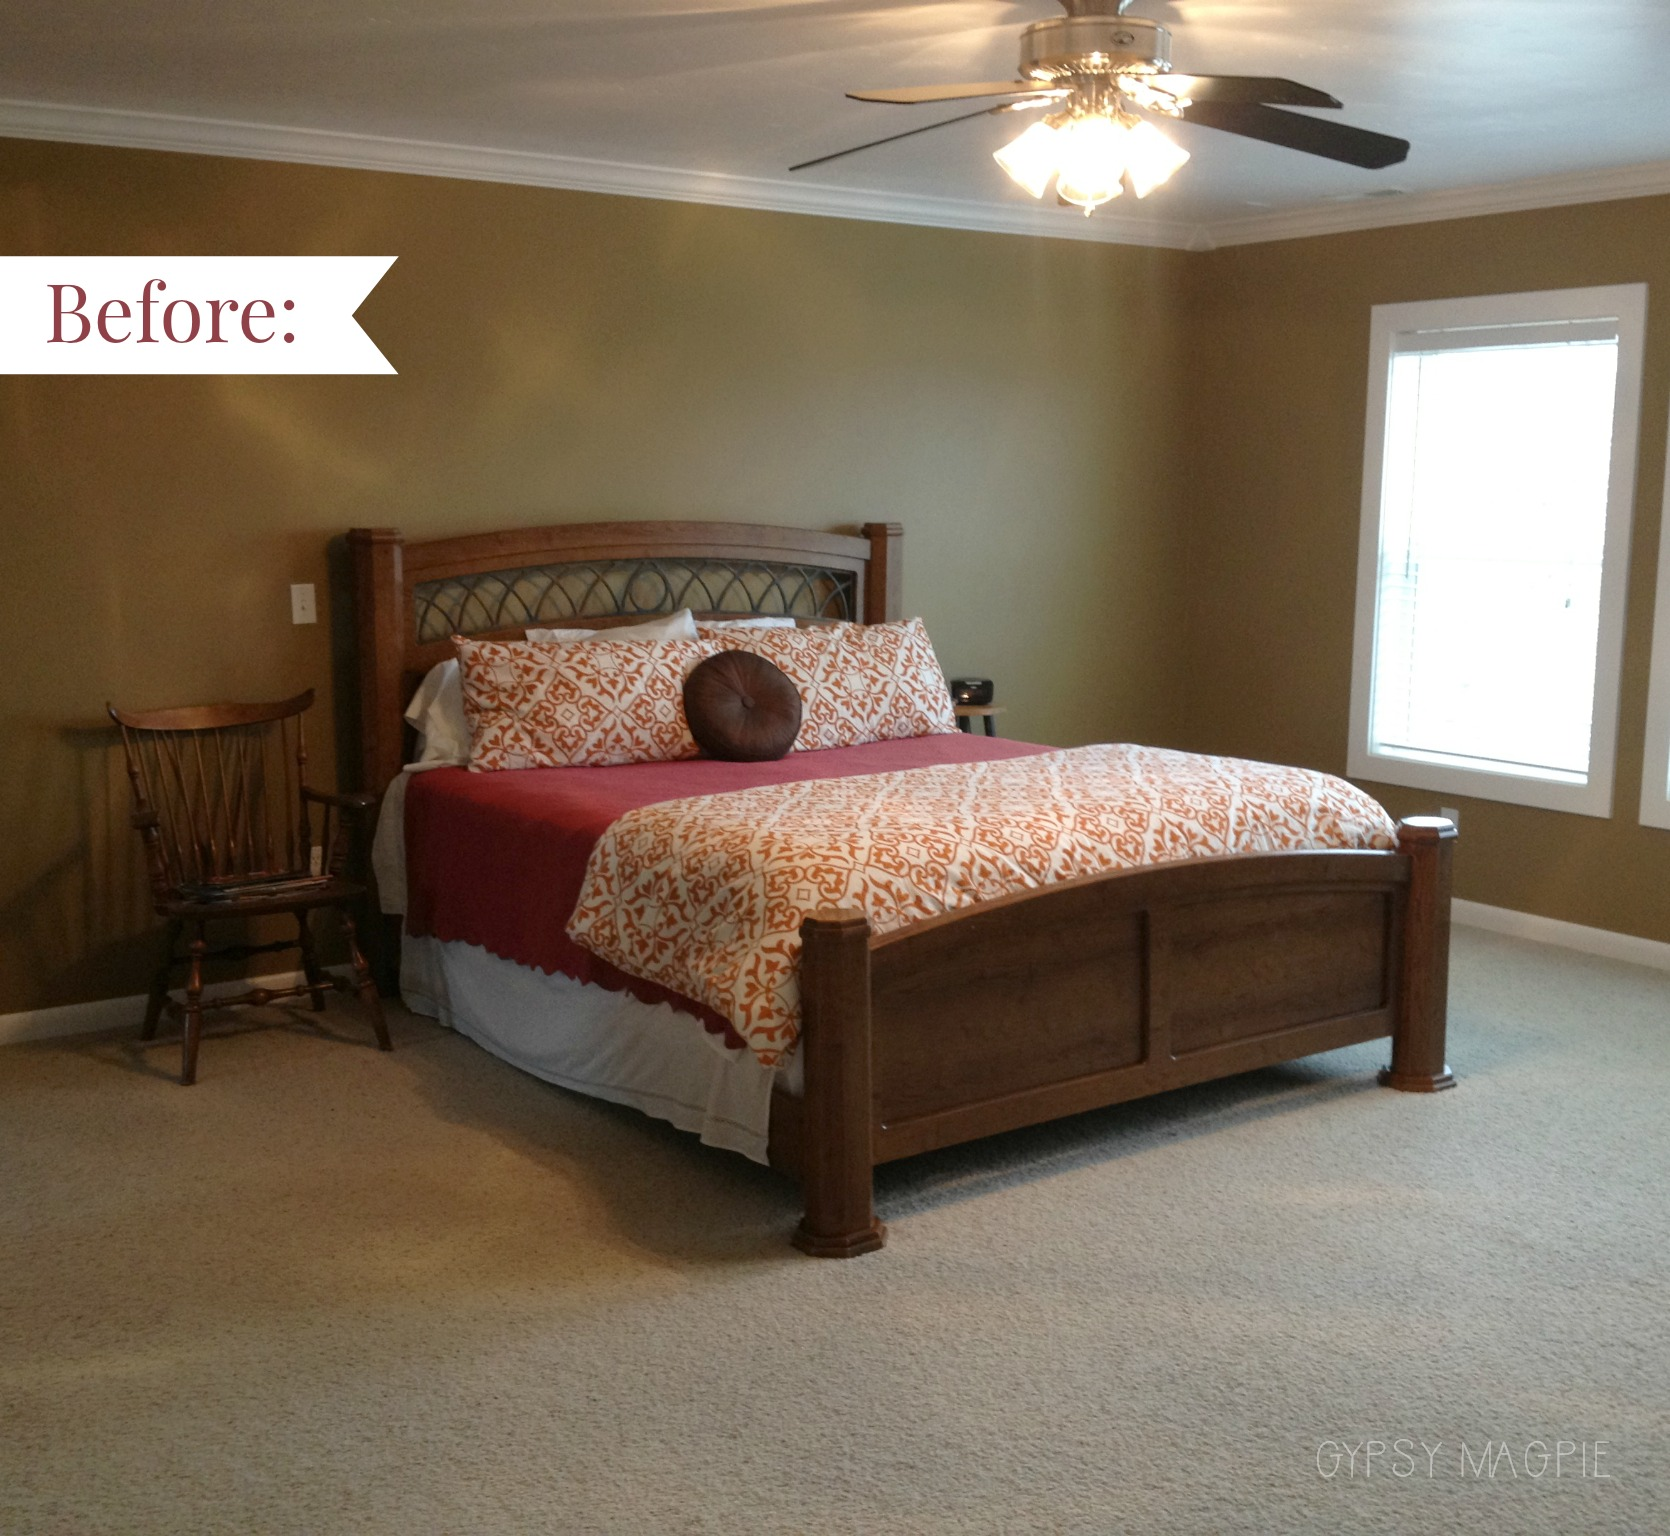 This is our master bedroom the week we moved in back in 2010. Come a long way since then! | gypsy magpie